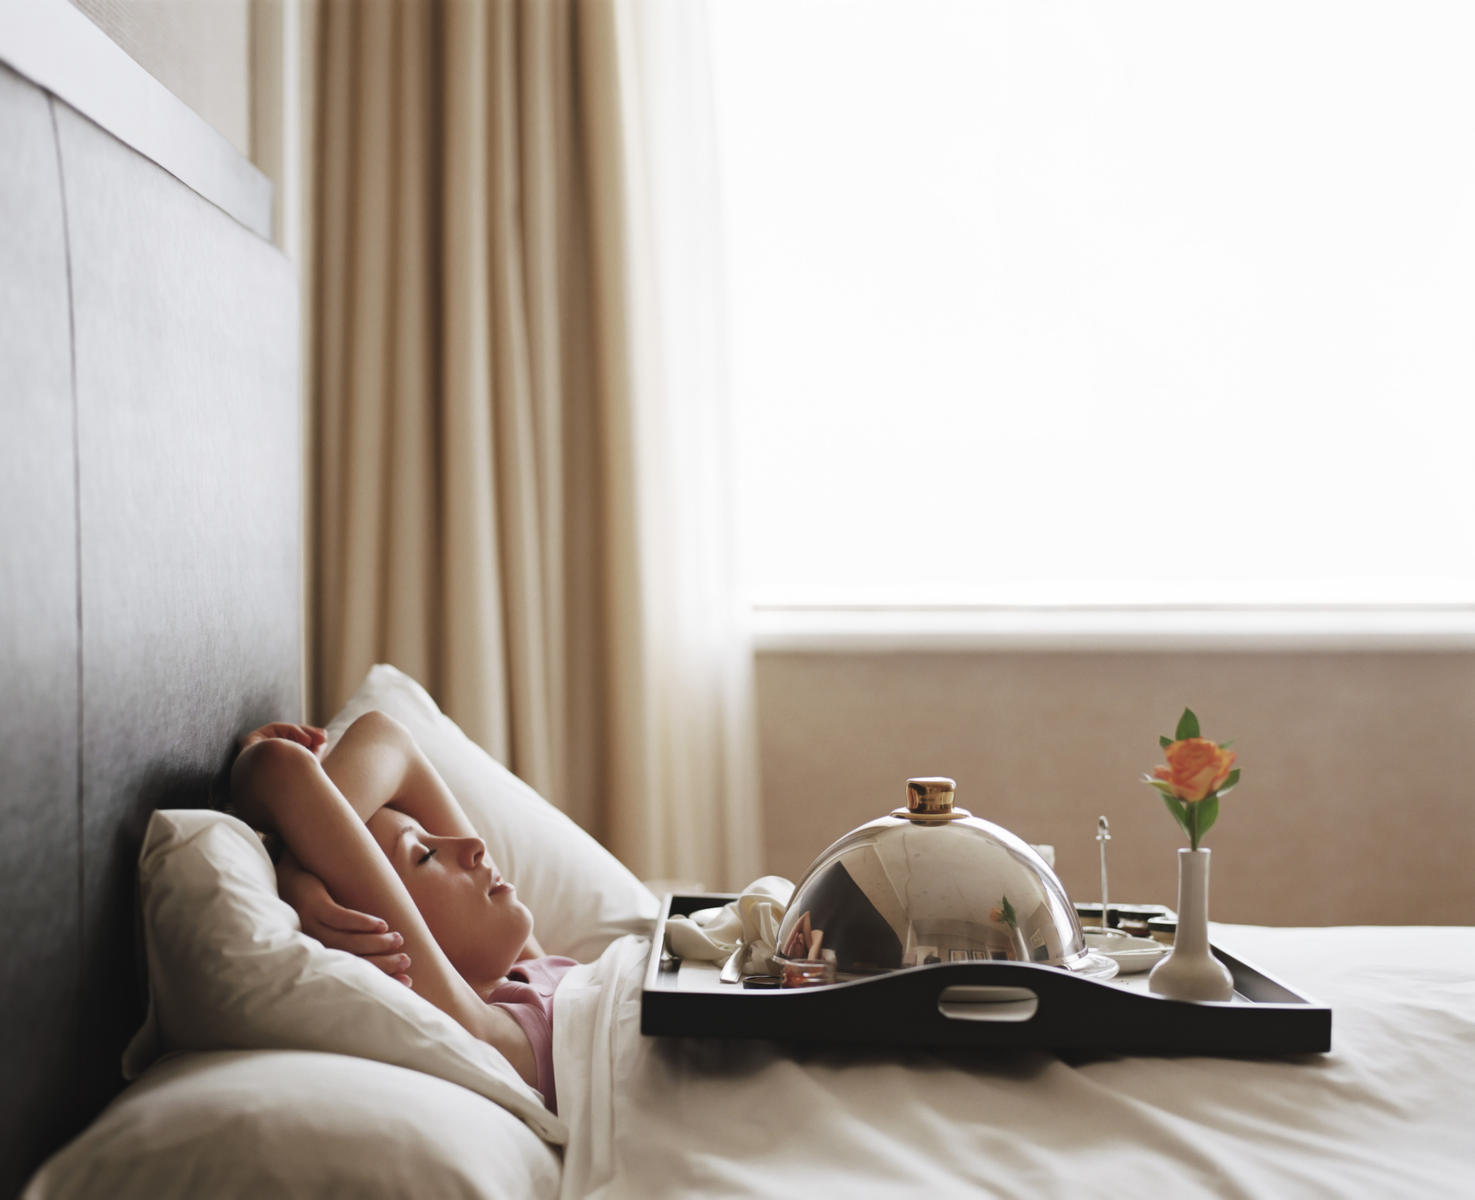 Woman lying in hotel bedroom with tray on chest, eyes closed